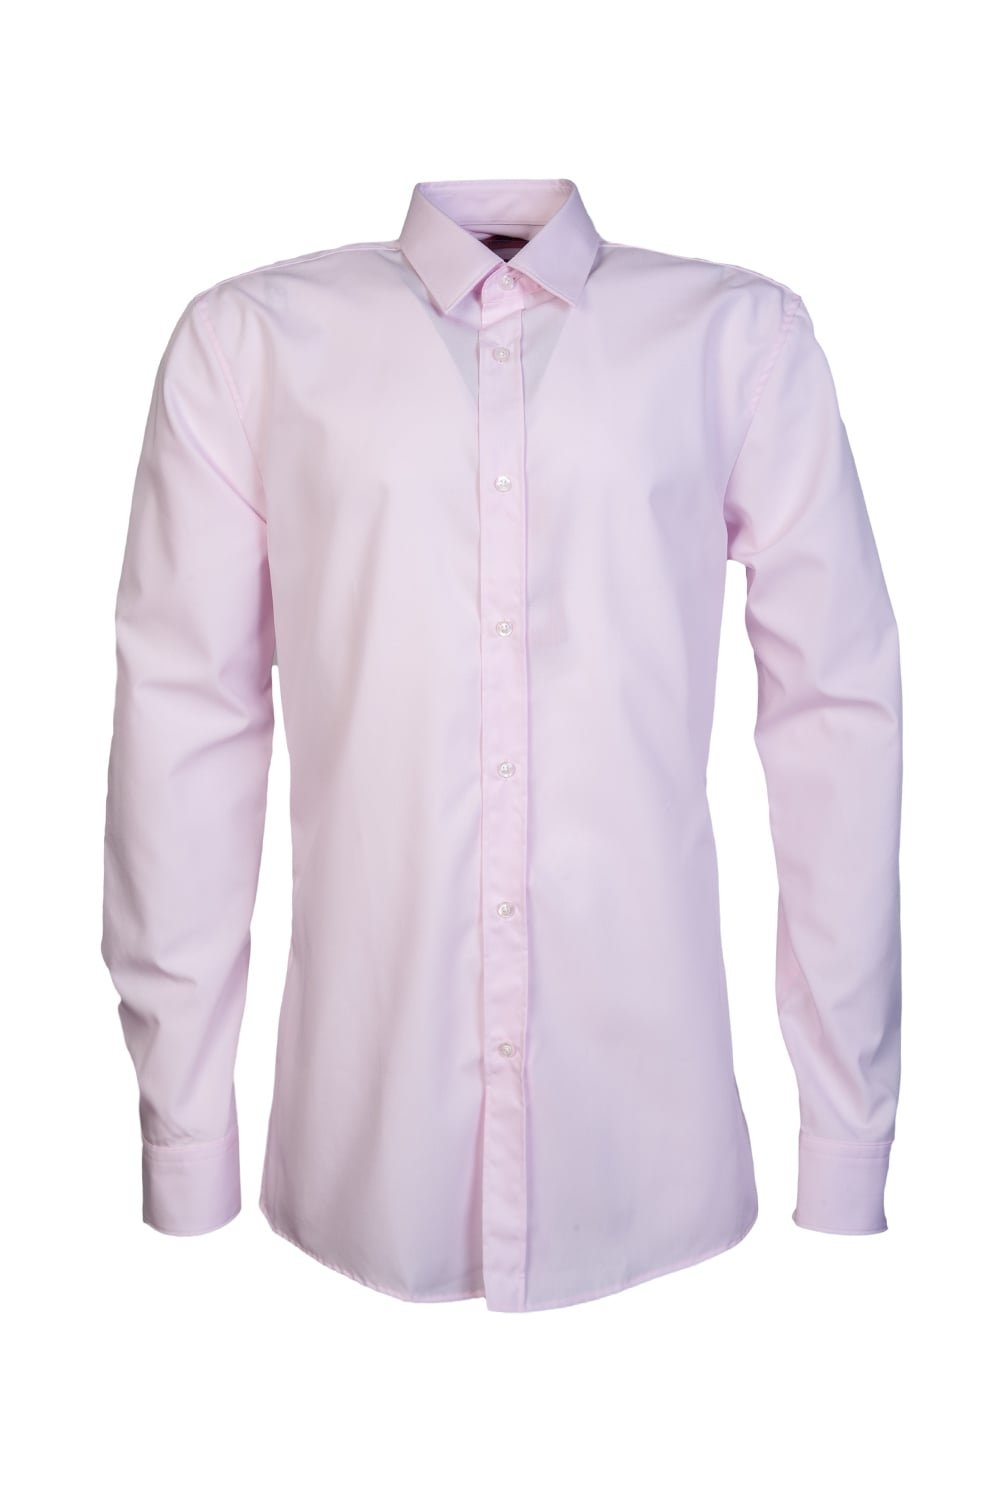 HUGO BOSS Mens Smart Shirt Elisha 01 50330360 Size 42 Pink